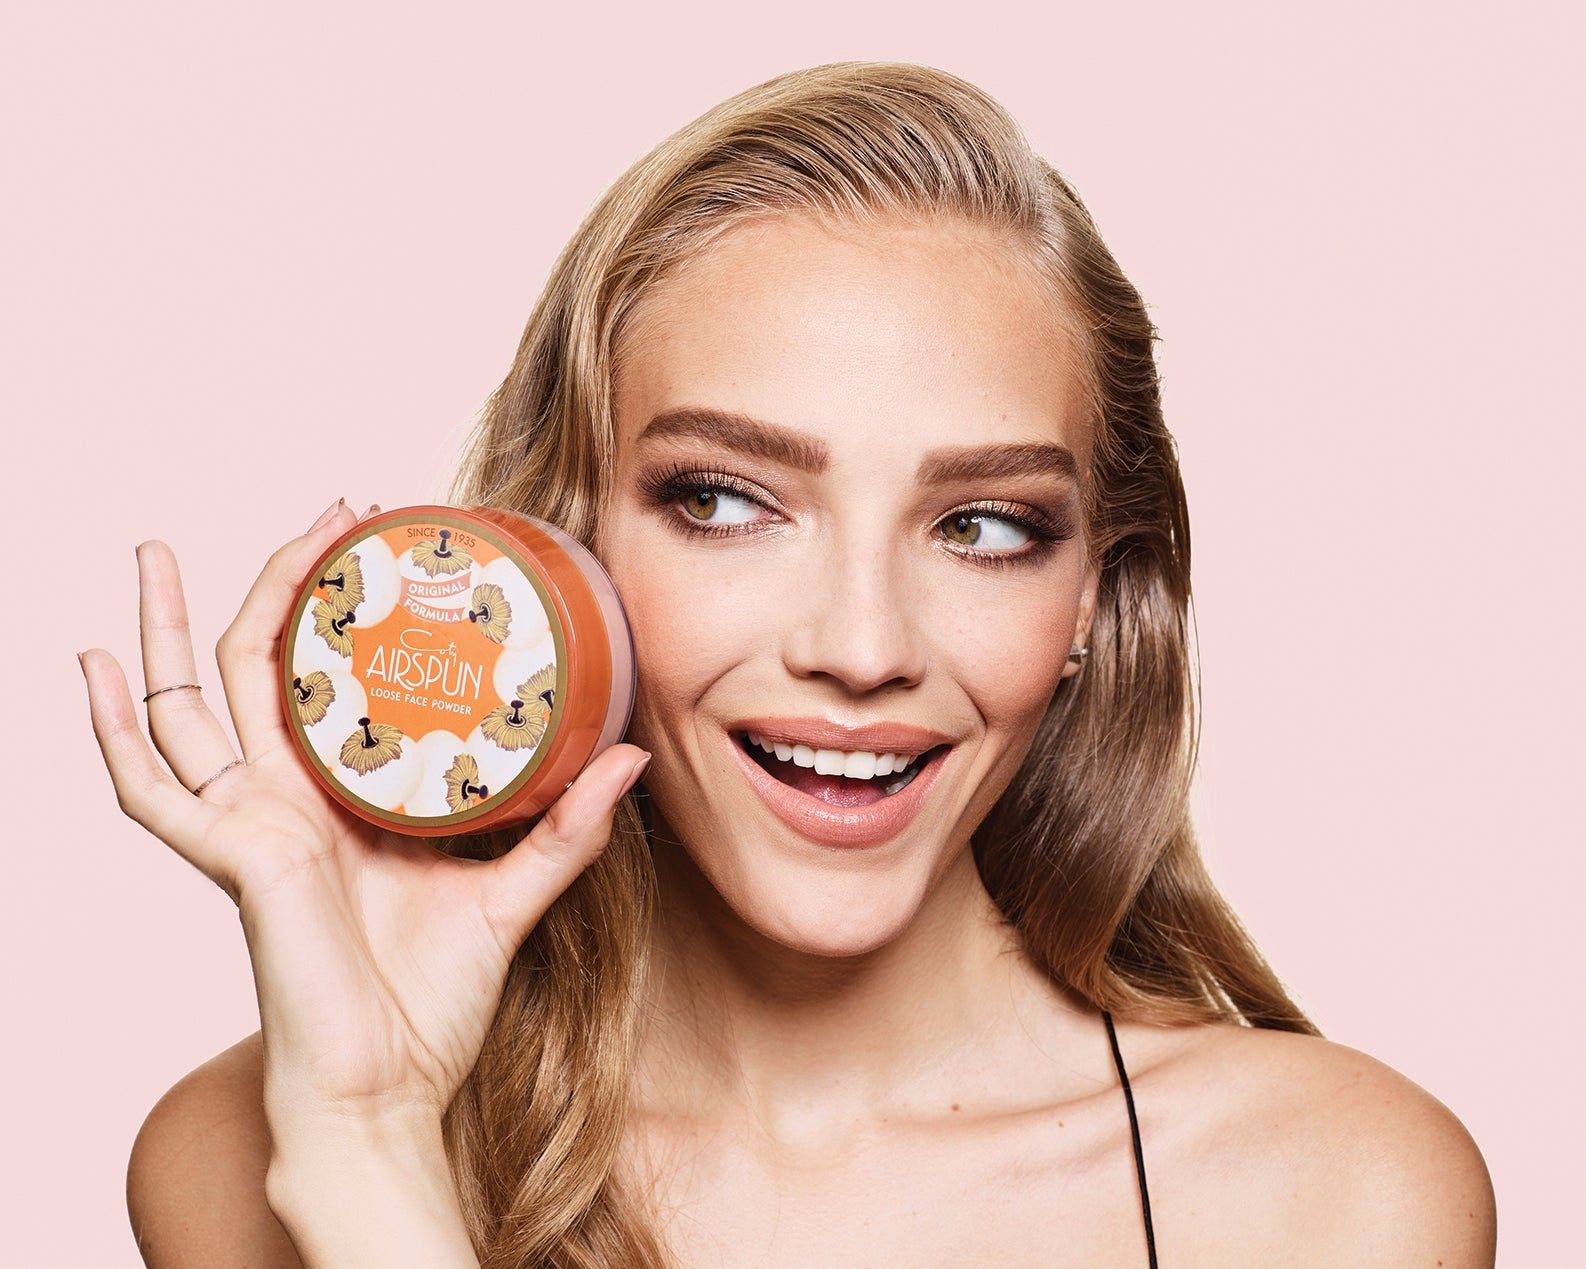 COTY - Loose Face Powder, 022 Rosey Beige, 2.3 oz